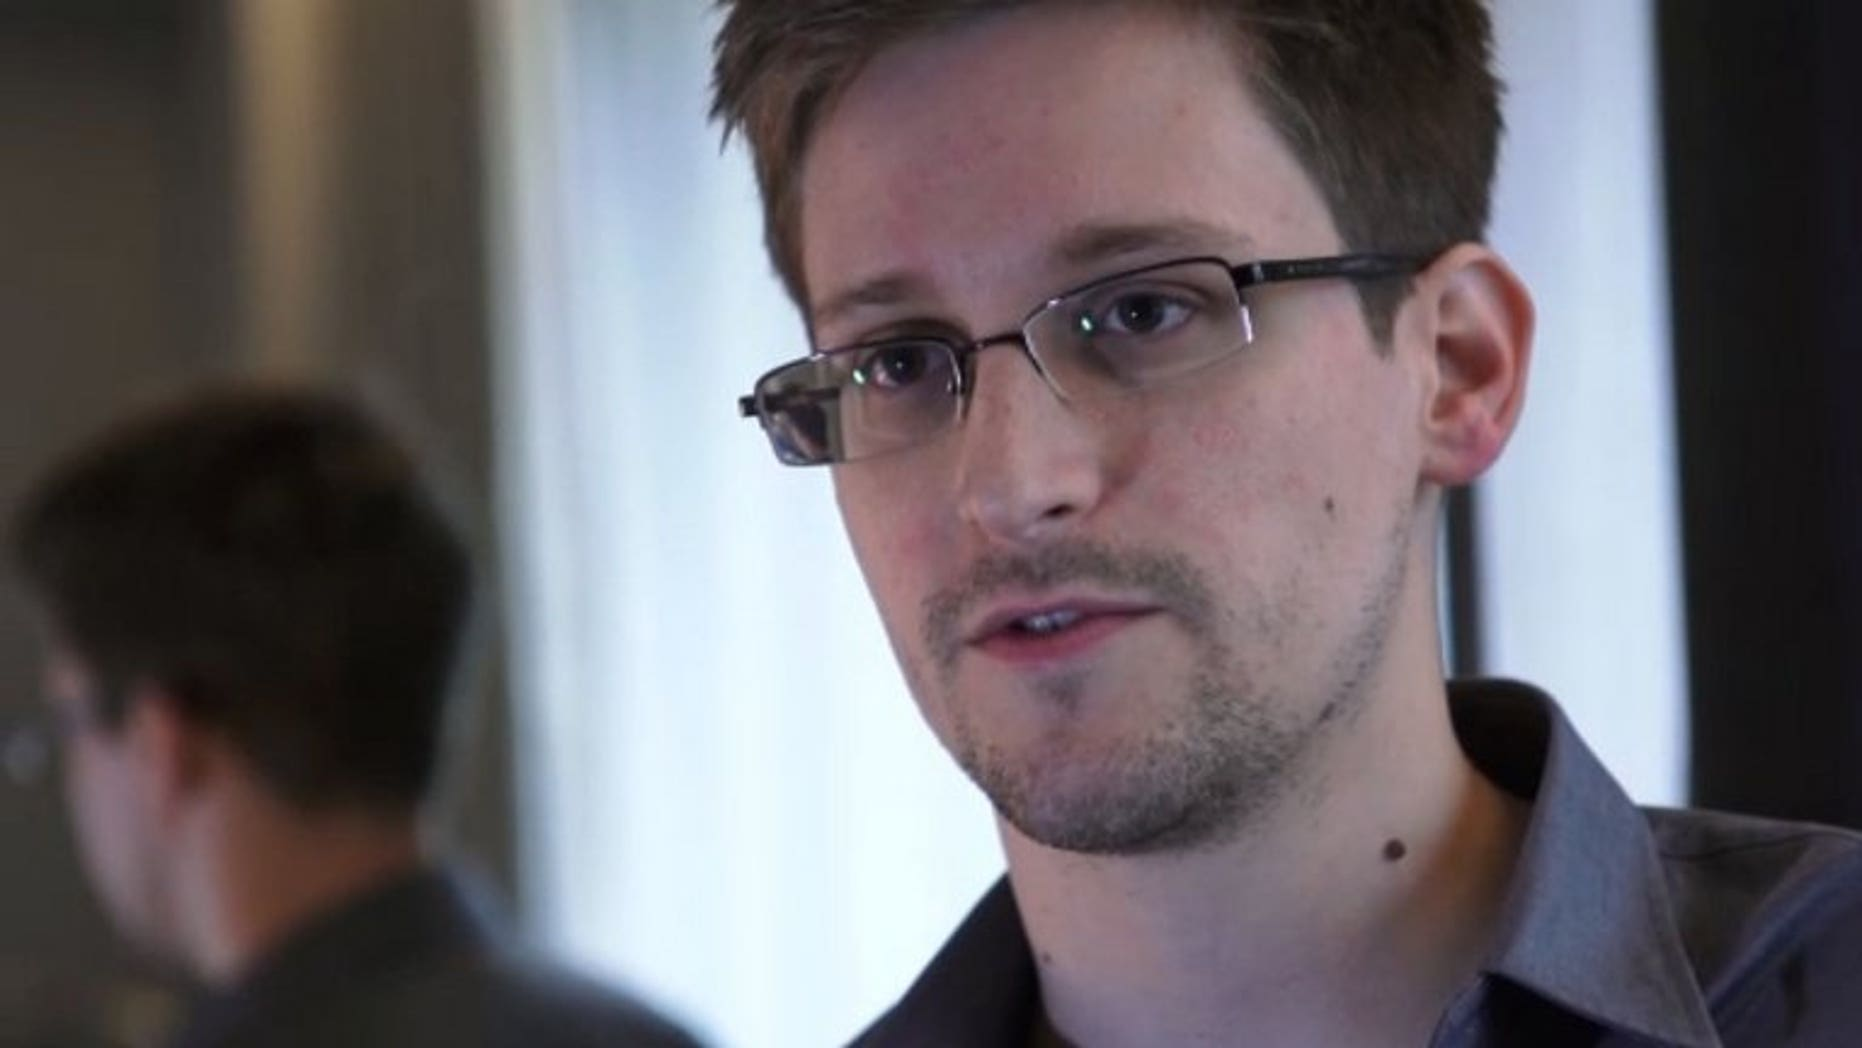 Edward Snowden speaks during an interview with The Guardian newspaper at an undisclosed location in Hong Kong on June 6, 2013. France said on Thursday it was rejecting a request for asylum from Snowden.